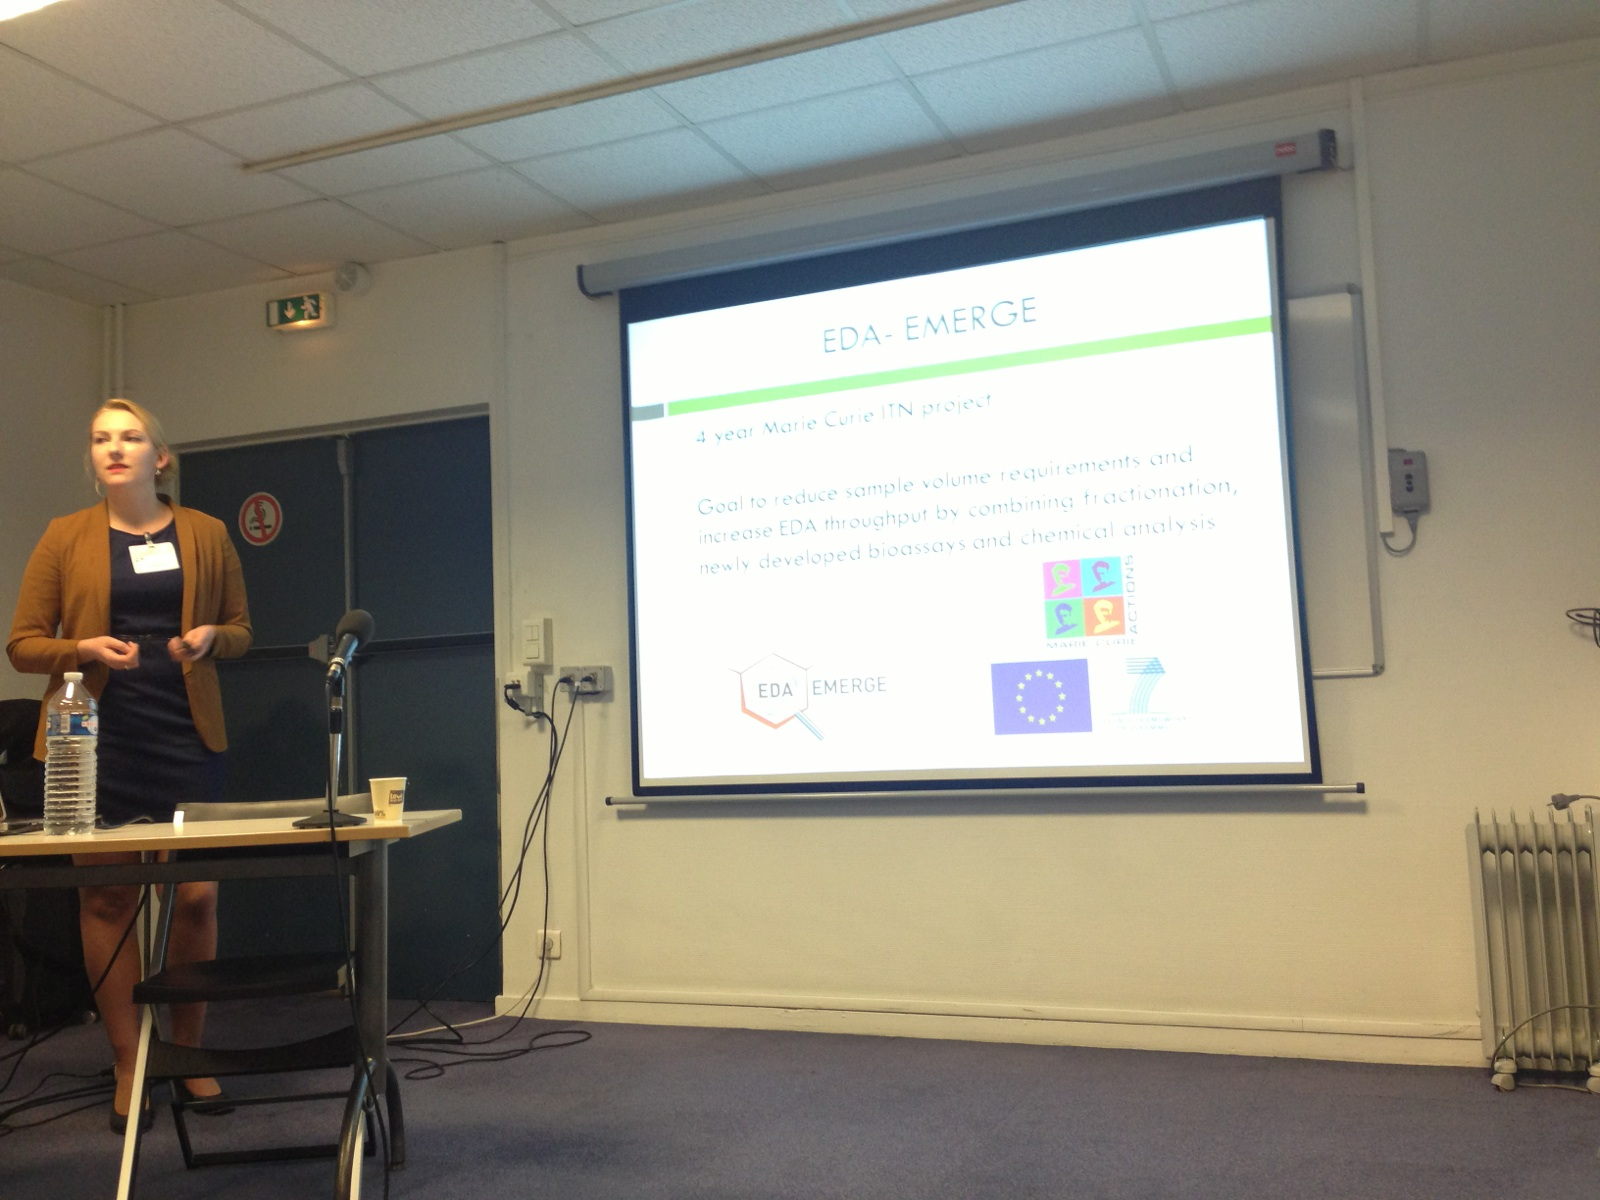 Petra Spirhanzlova at the 6th EFOR SEMINAR